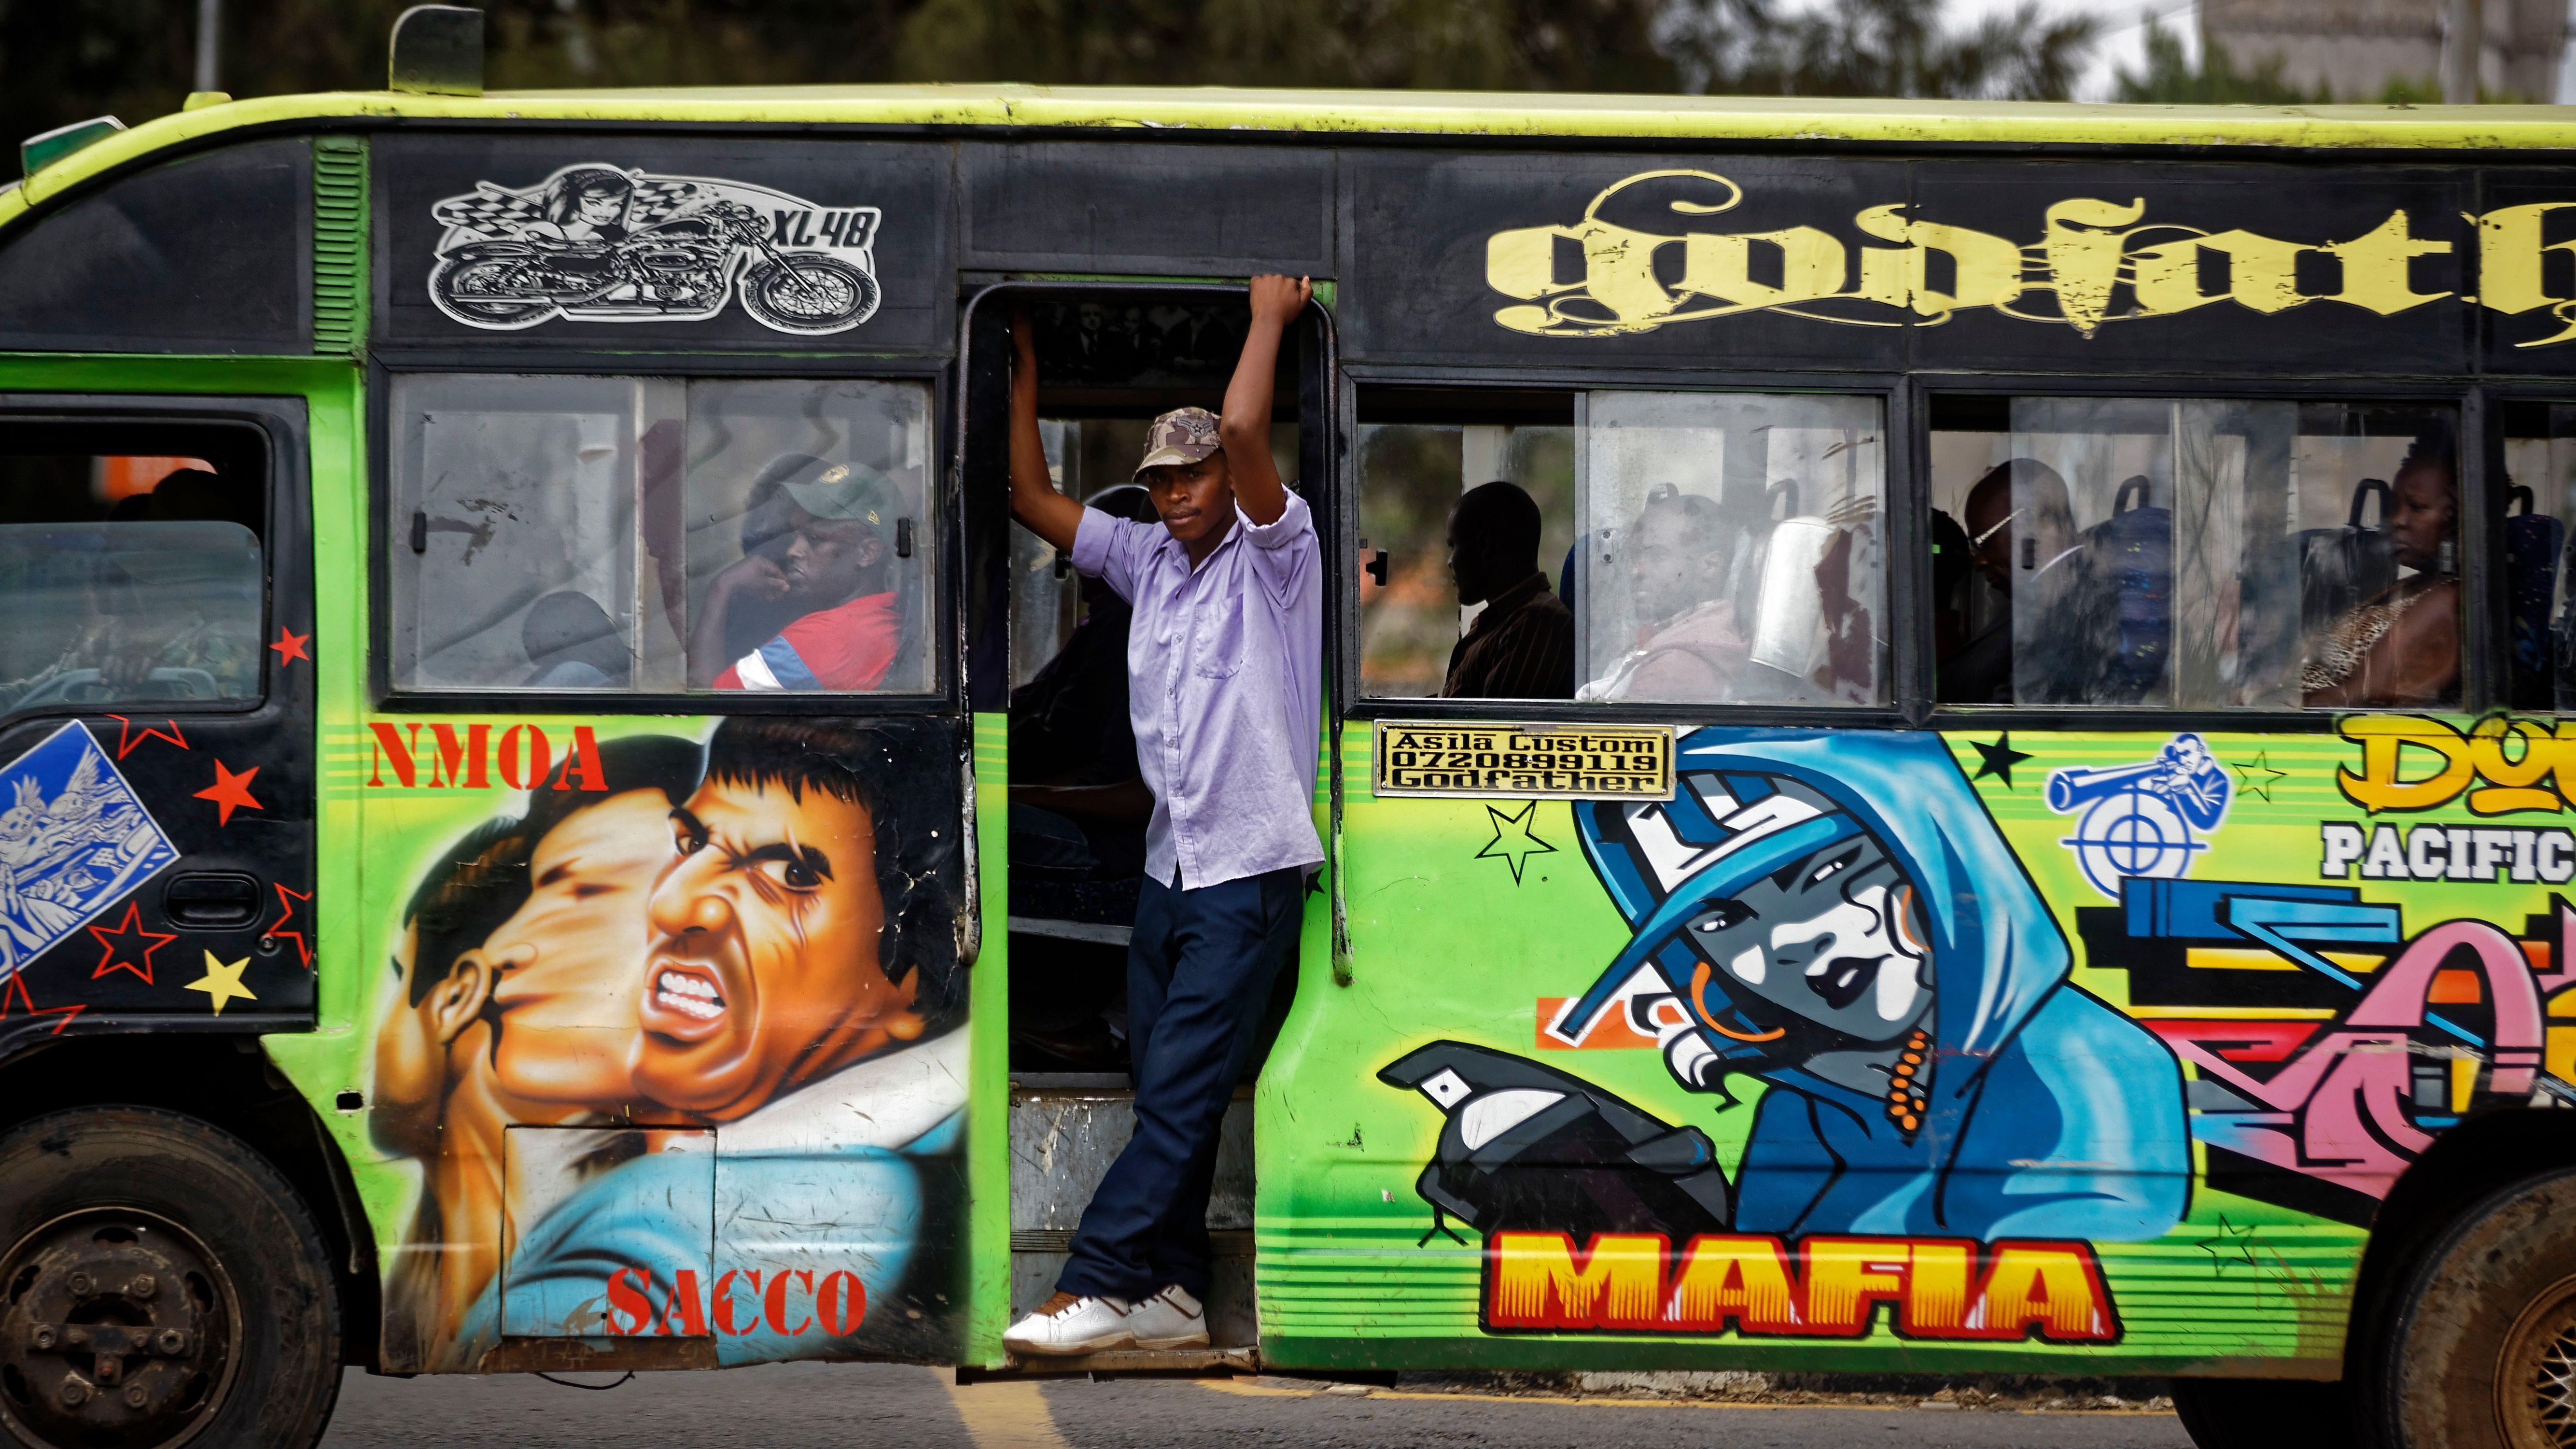 """The conductor of a """"matatu"""" public minibus looks out as supporters of opposition leader Raila Odinga attempt to demonstrate in downtown Nairobi, Kenya Tuesday, Oct. 24, 2017. President Uhuru Kenyatta said on Monday the presidential election must go ahead as planned on Thursday, despite a boycott by Odinga and the chief electoral officer's recent statement that he cannot guarantee that the polls would be credible."""